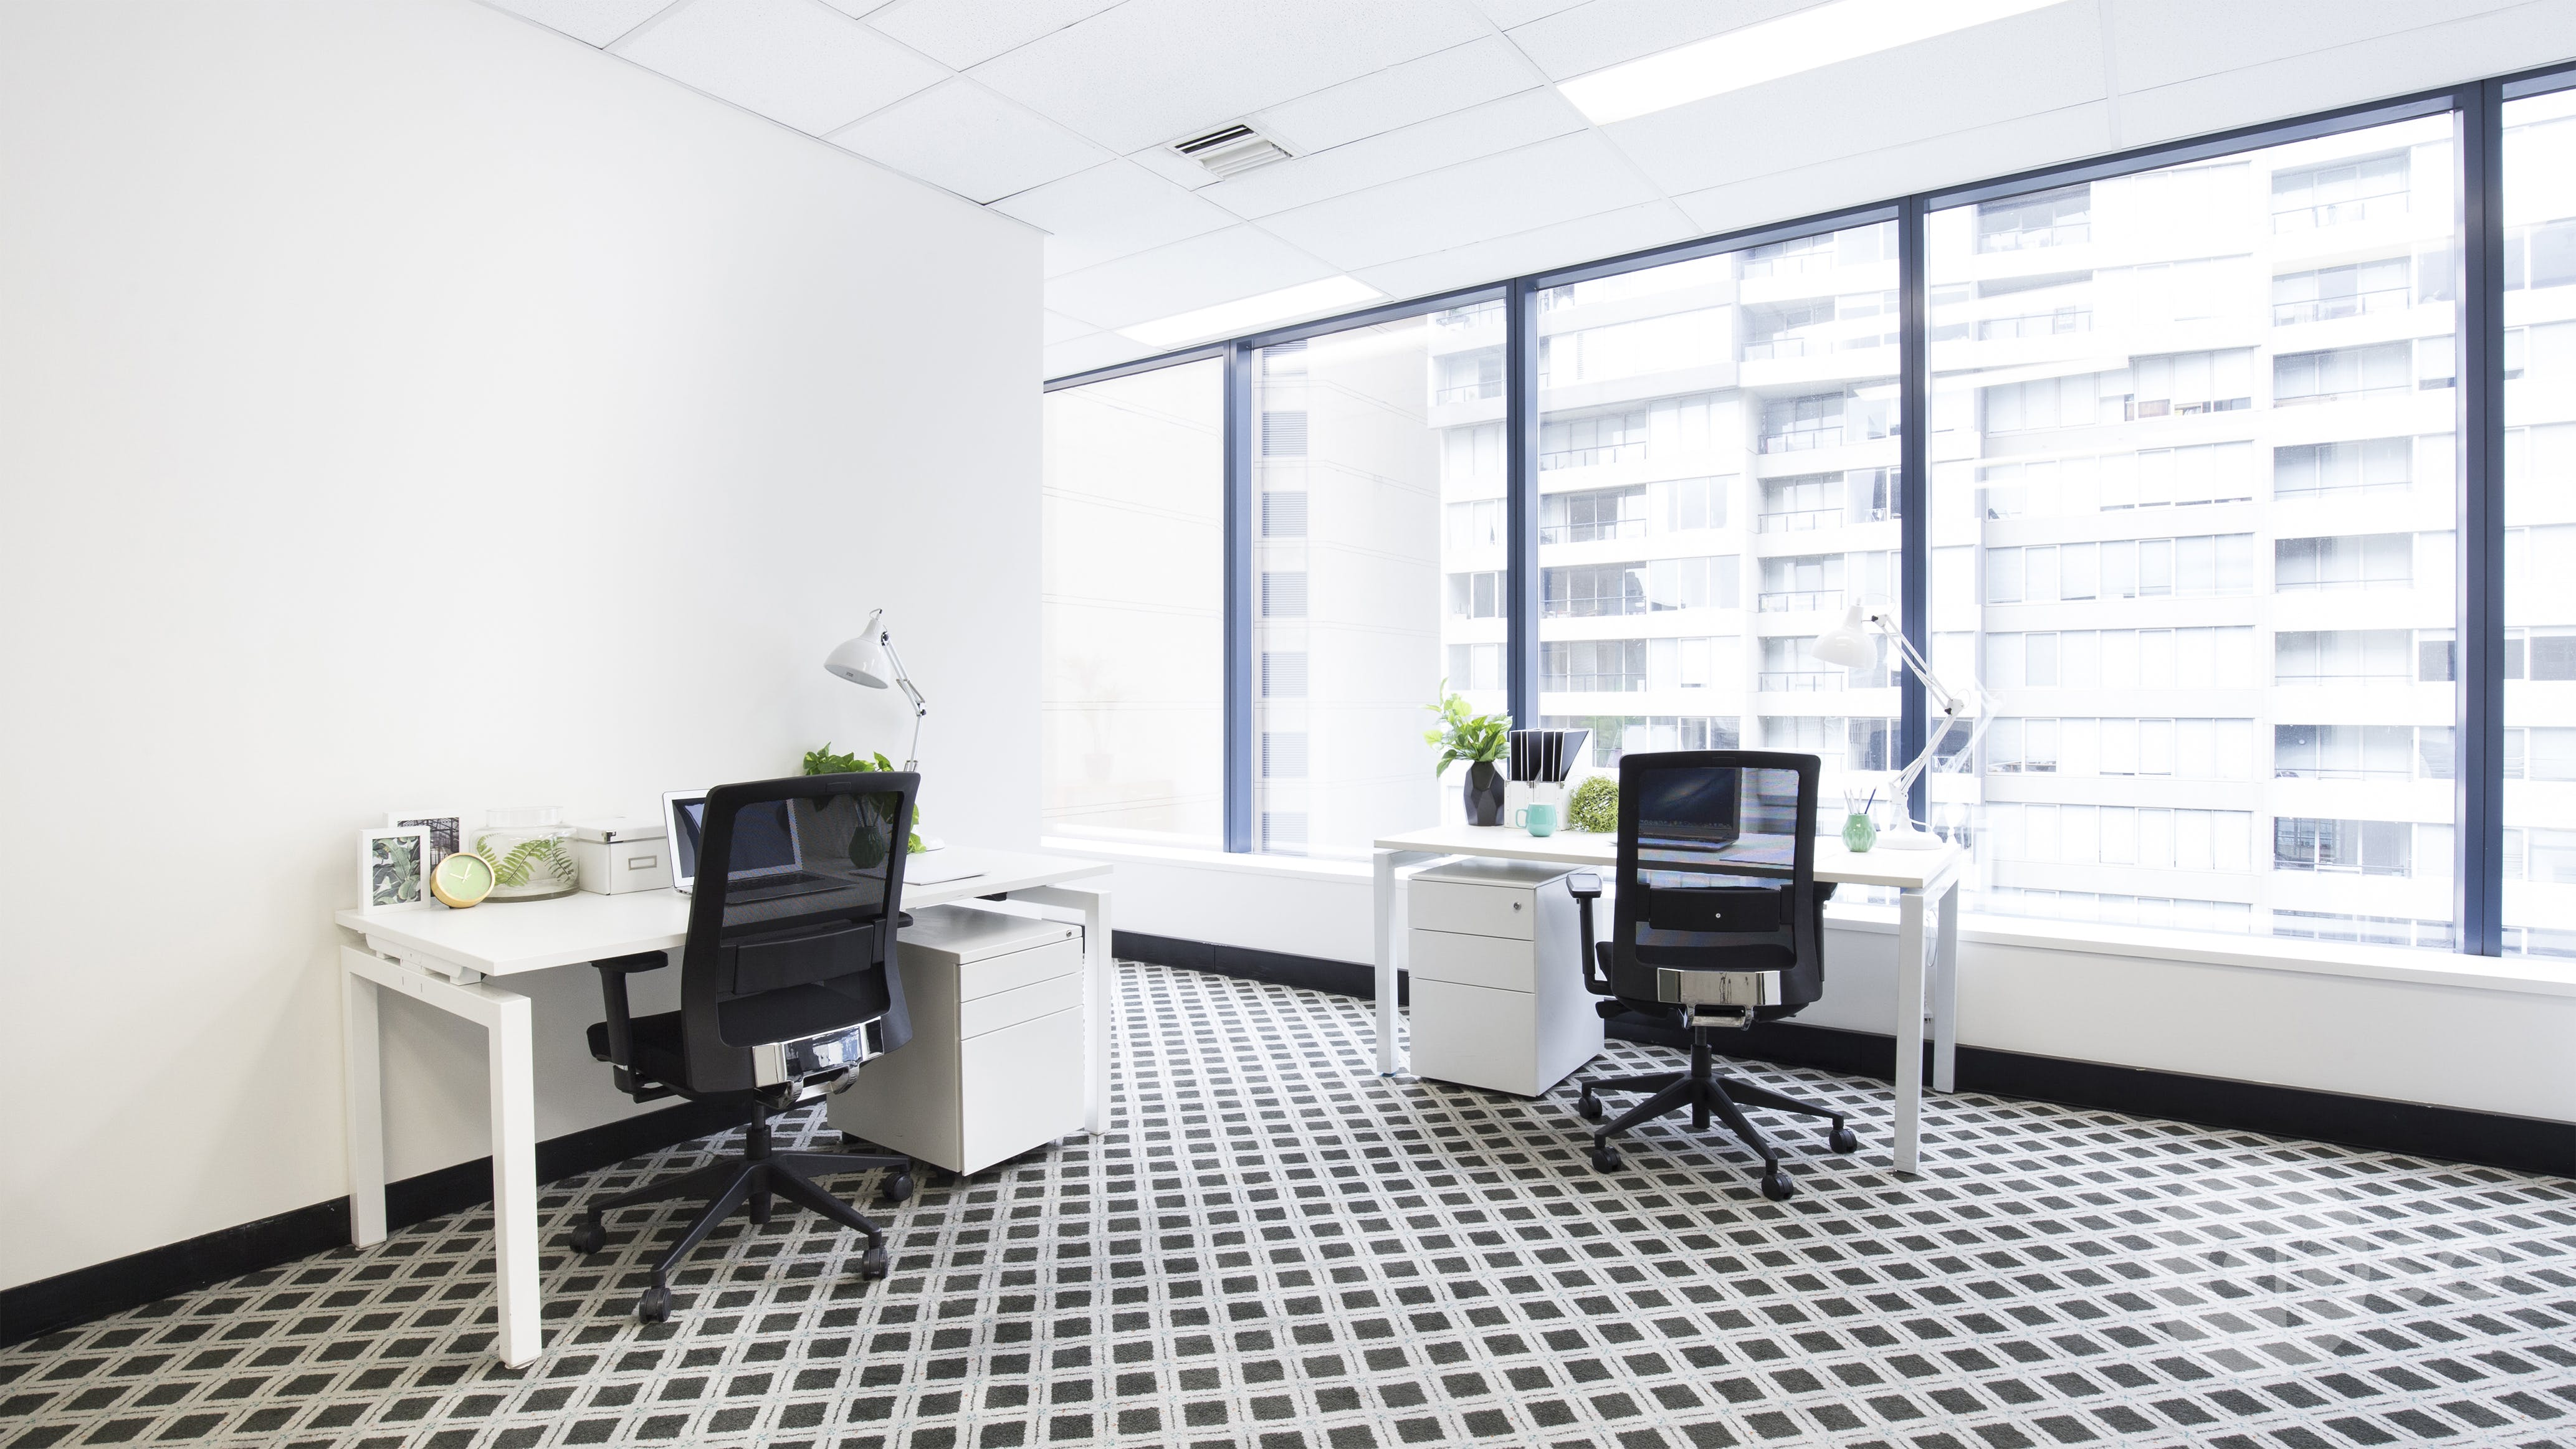 Level 9, private office at St Kilda Rd Towers, image 1